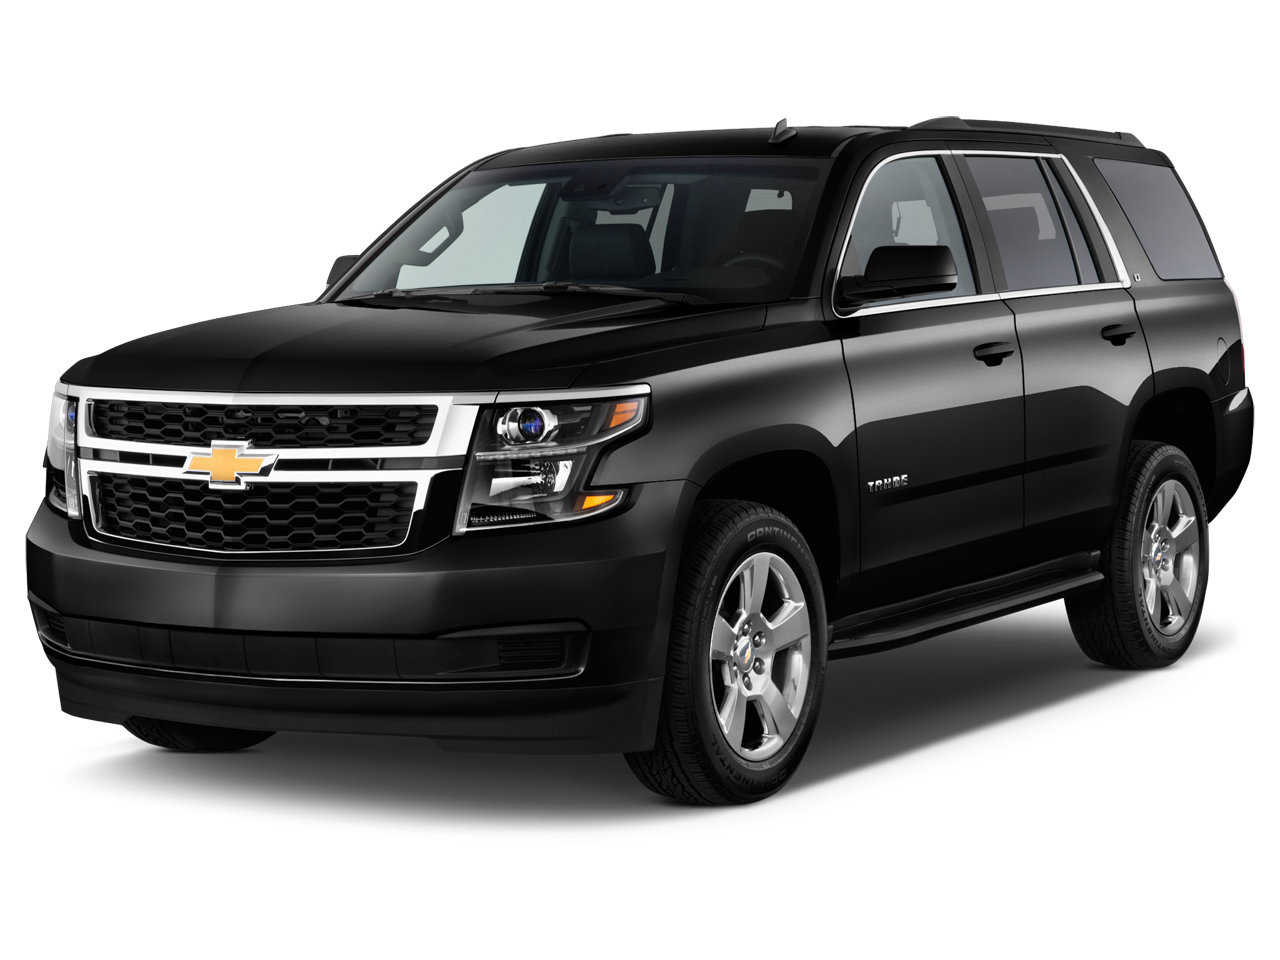 new 2017 chevrolet tahoe lt z71 near flint mi randy wise auto. Black Bedroom Furniture Sets. Home Design Ideas